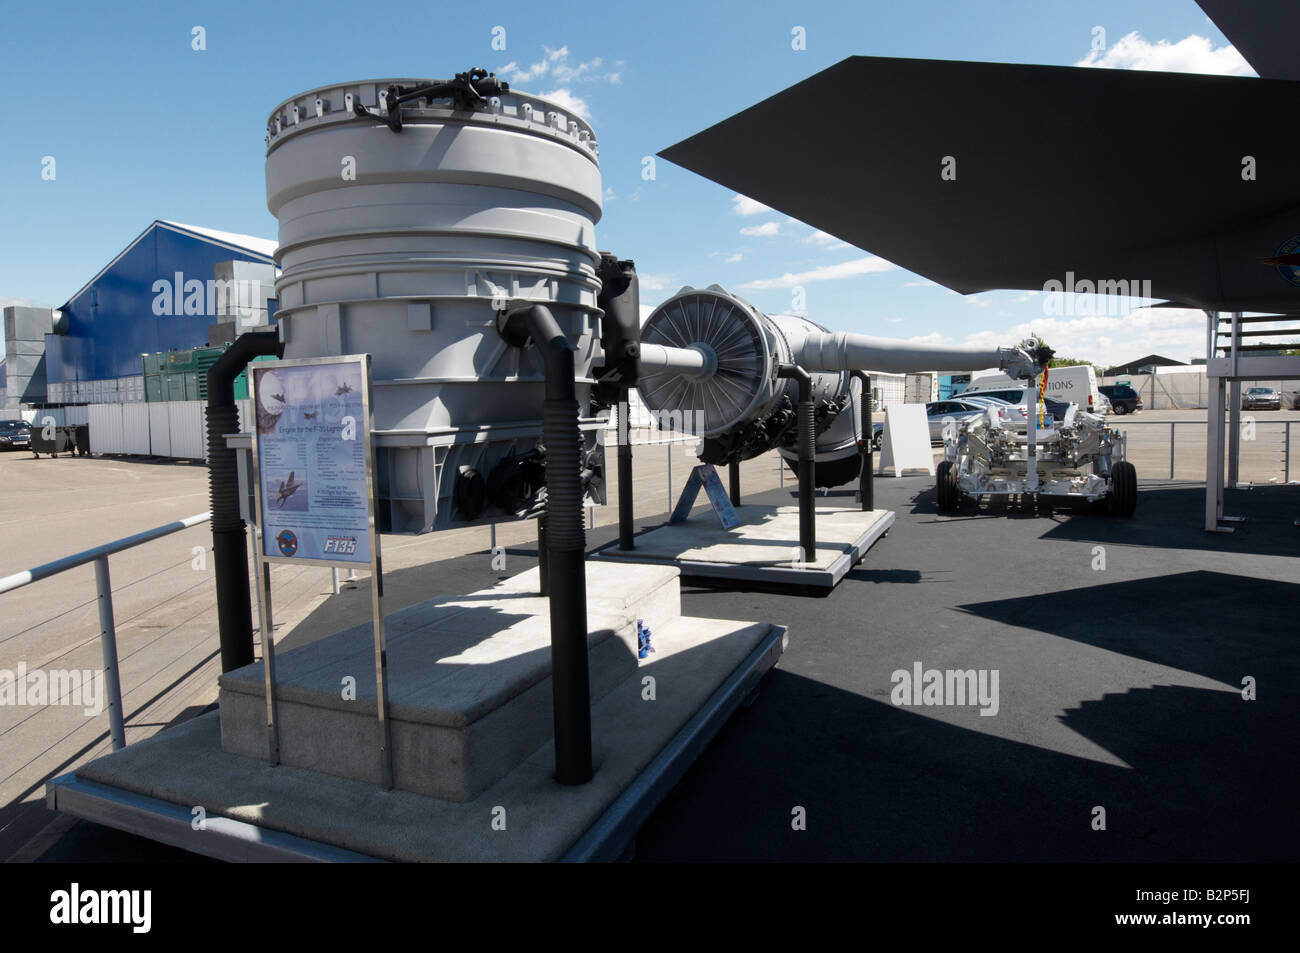 Pratt & Whitney F135 Engine for Lockheed Martin F-35